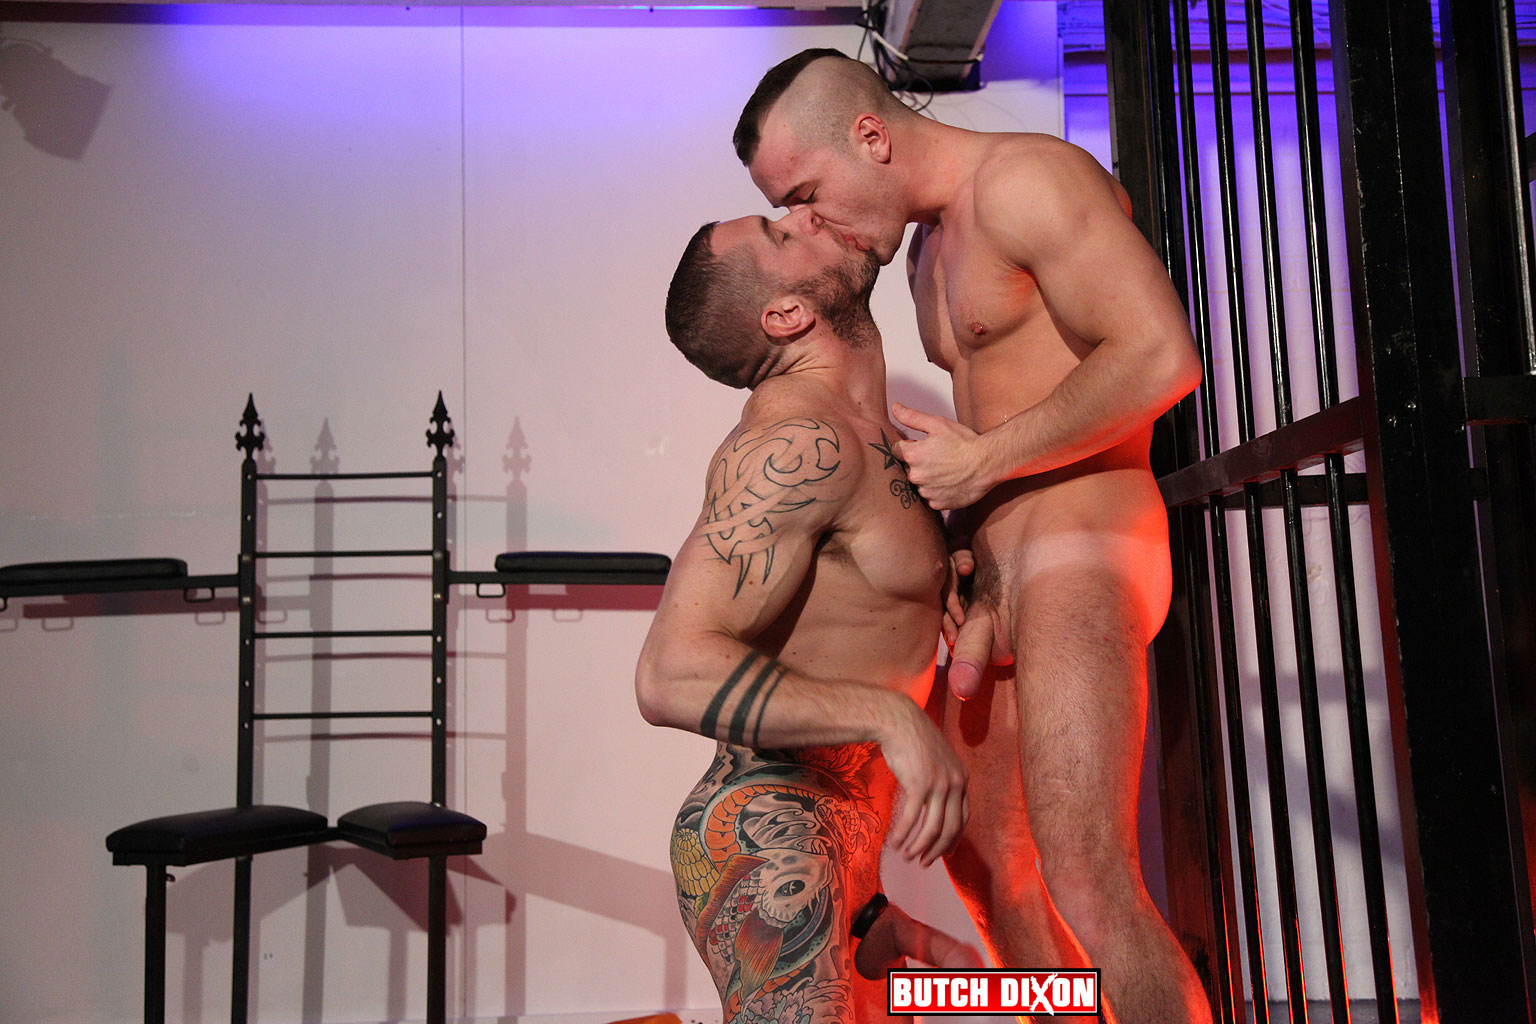 Butch Dixon Harley Everett and Diesel OGreen bareback 08 Amateur British Guys With Huge Uncut Cocks Fucking Bareback